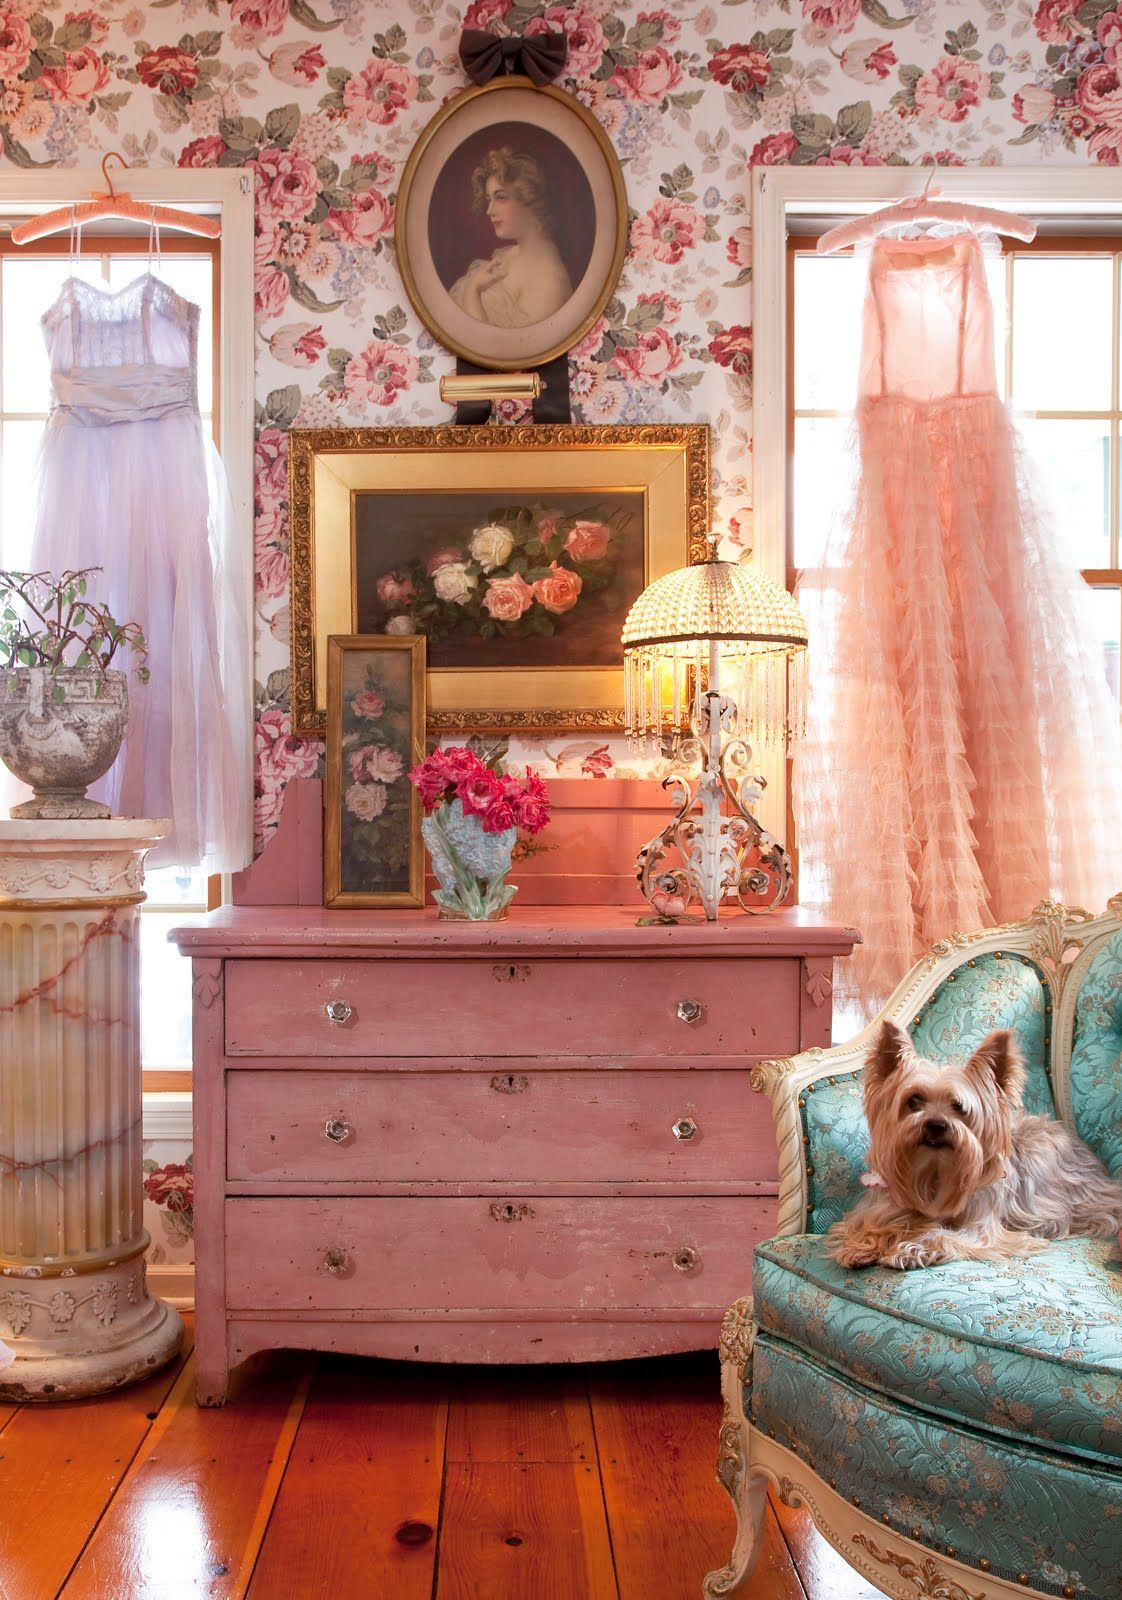 Vintage bedroom decor pictures photos and images for facebook tumblr pinterest and twitter - Vintage bedroom decor ideas ...